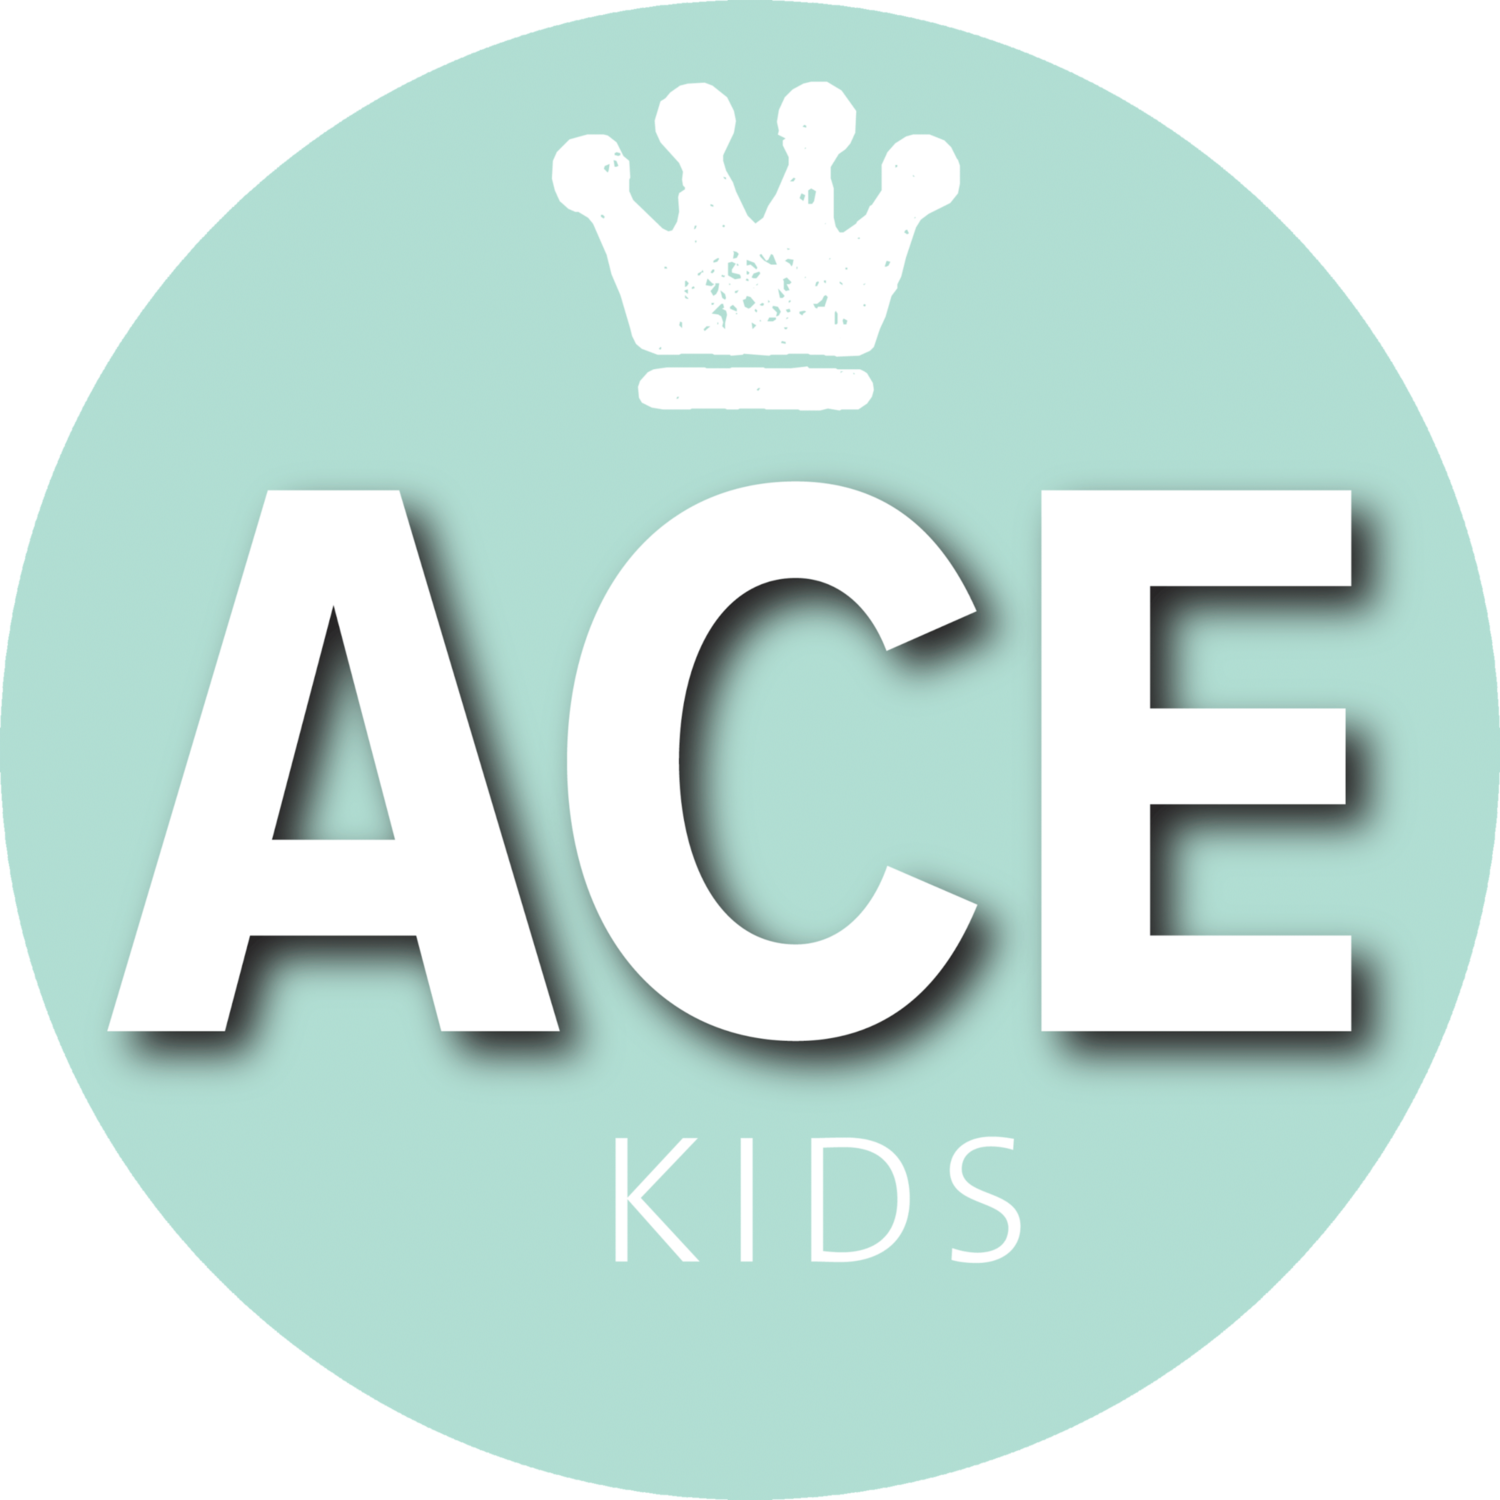 ACE Kids Parenting Model